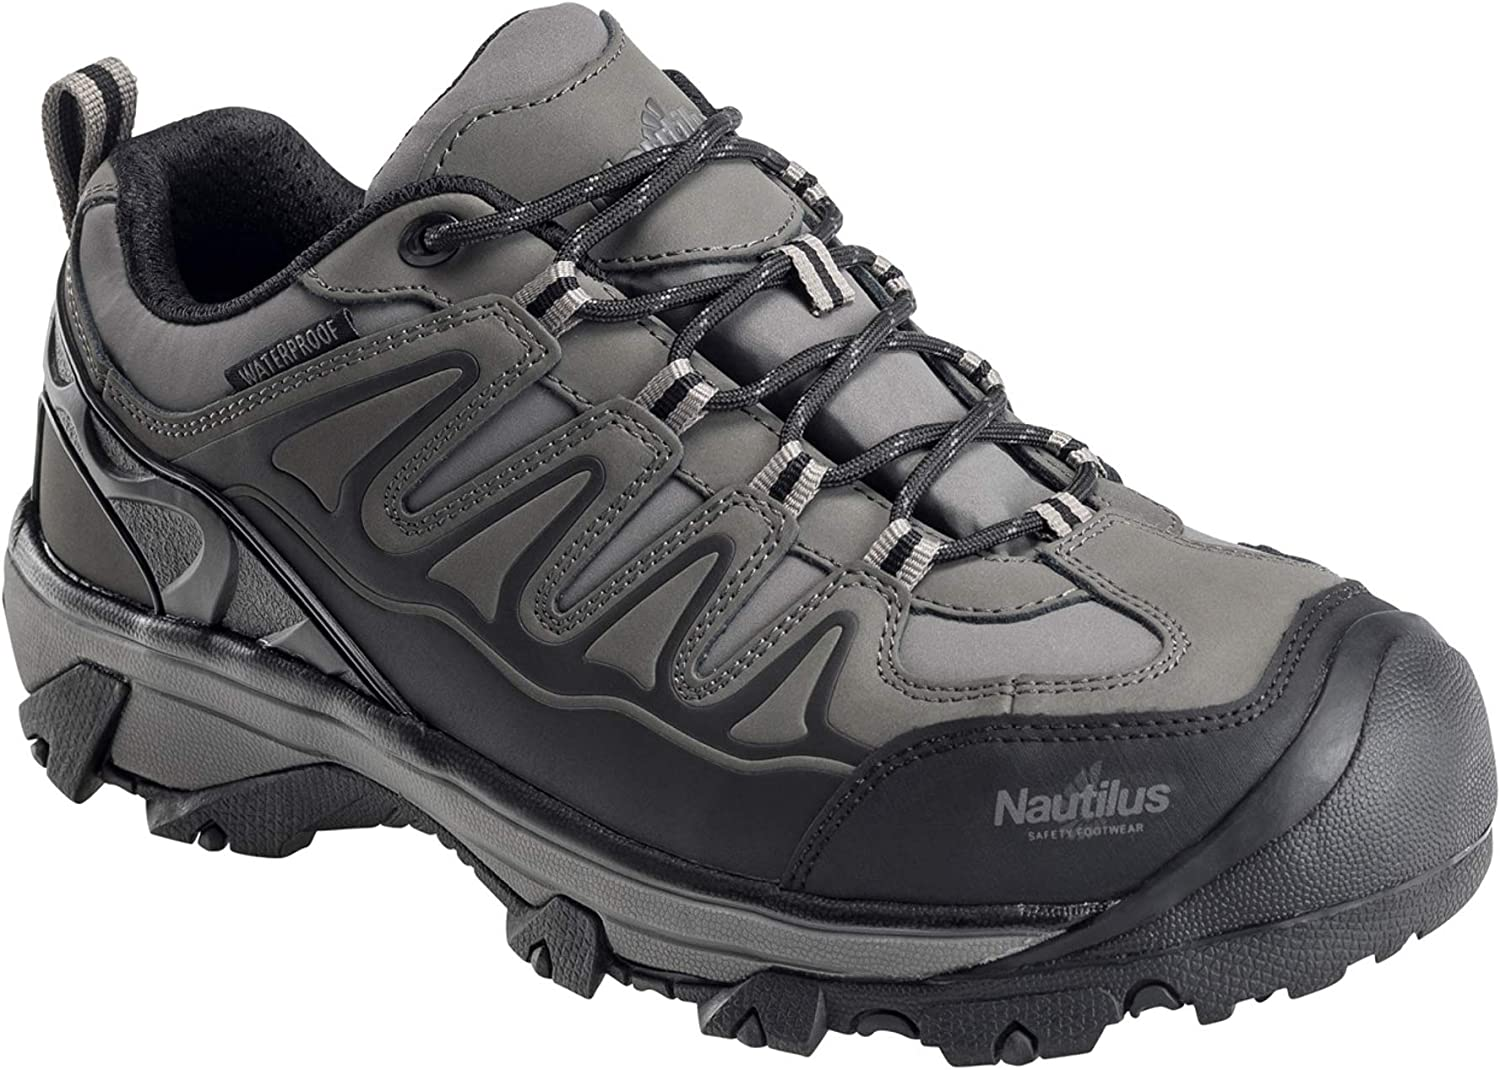 Nautilus Men's Waterproof Athletic Hiker Shoes Steel Toe